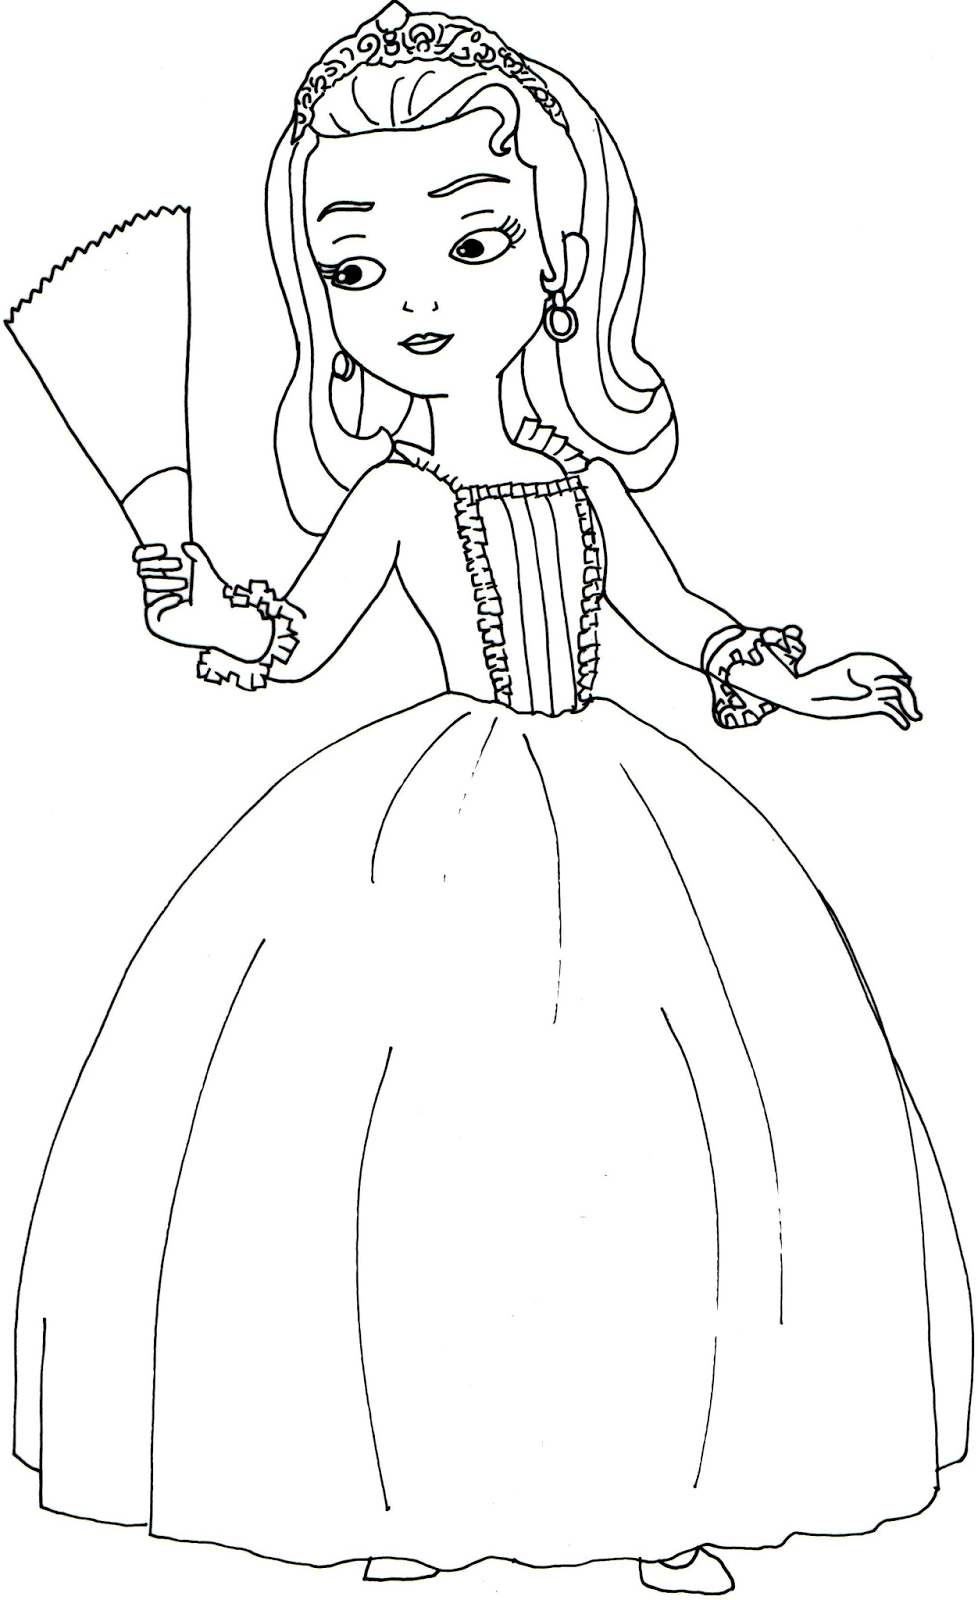 Princess sophia printable coloring pages - Lots Of Free And Printable Coloring Pages For The Small Fans Of Sofia The First